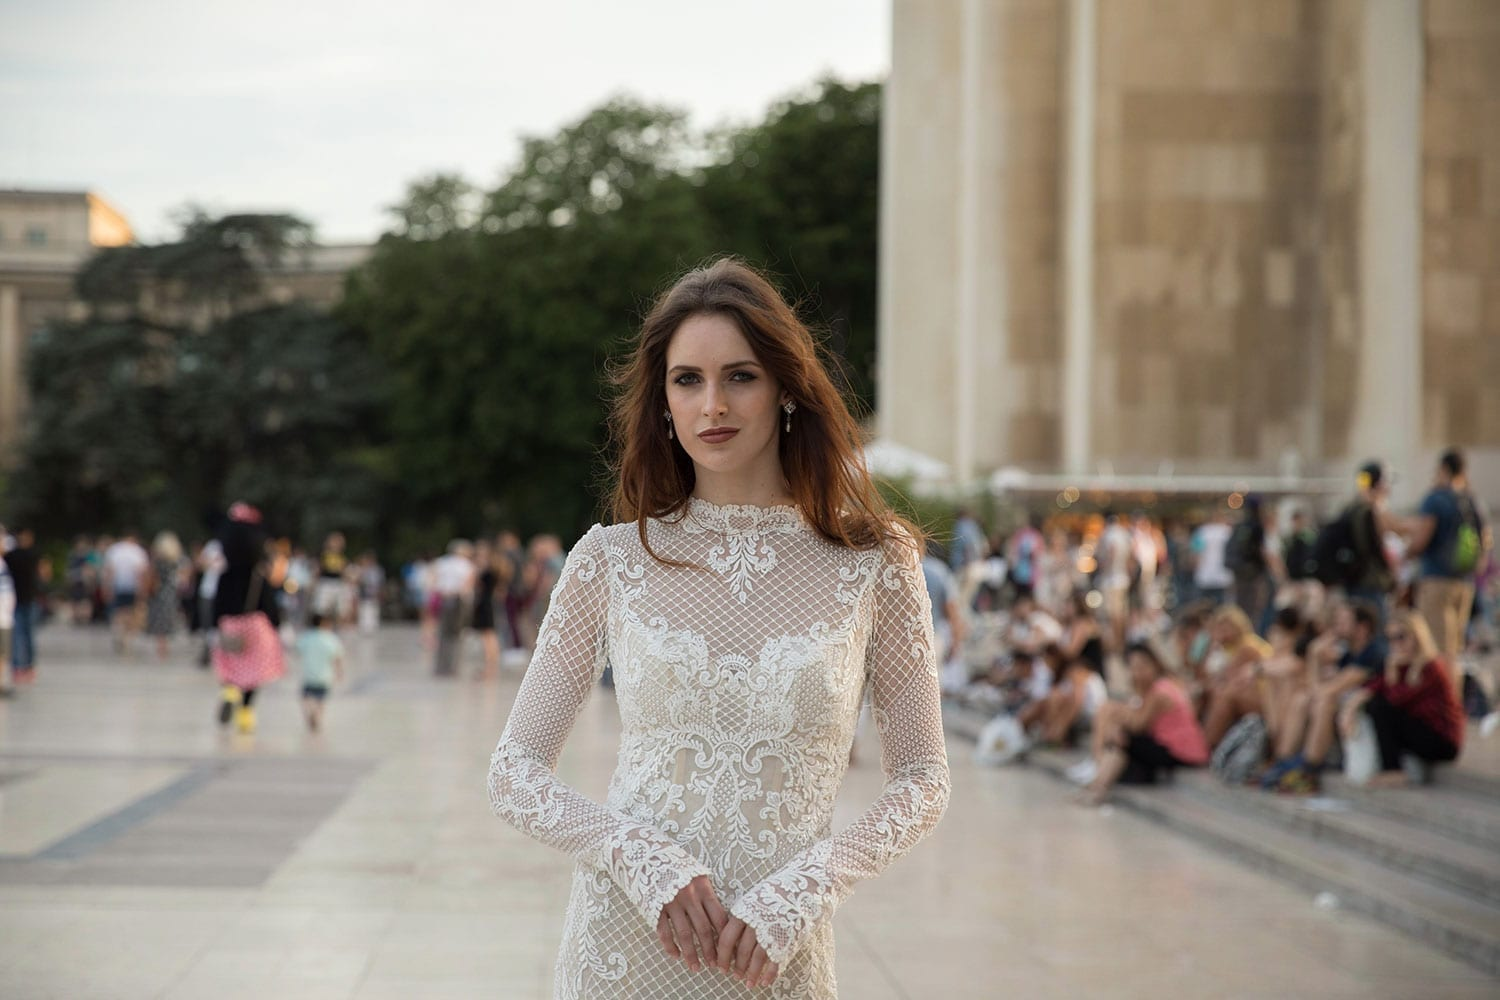 Model wearing Vinka Design Hayley Wedding Dress, a stunning fitted lace wedding dress with a divine low back, high neckline and fitted yet shaped sleeves. The lace is beautifully beaded and the gown is finished with little pearls. Parisian backdrop.